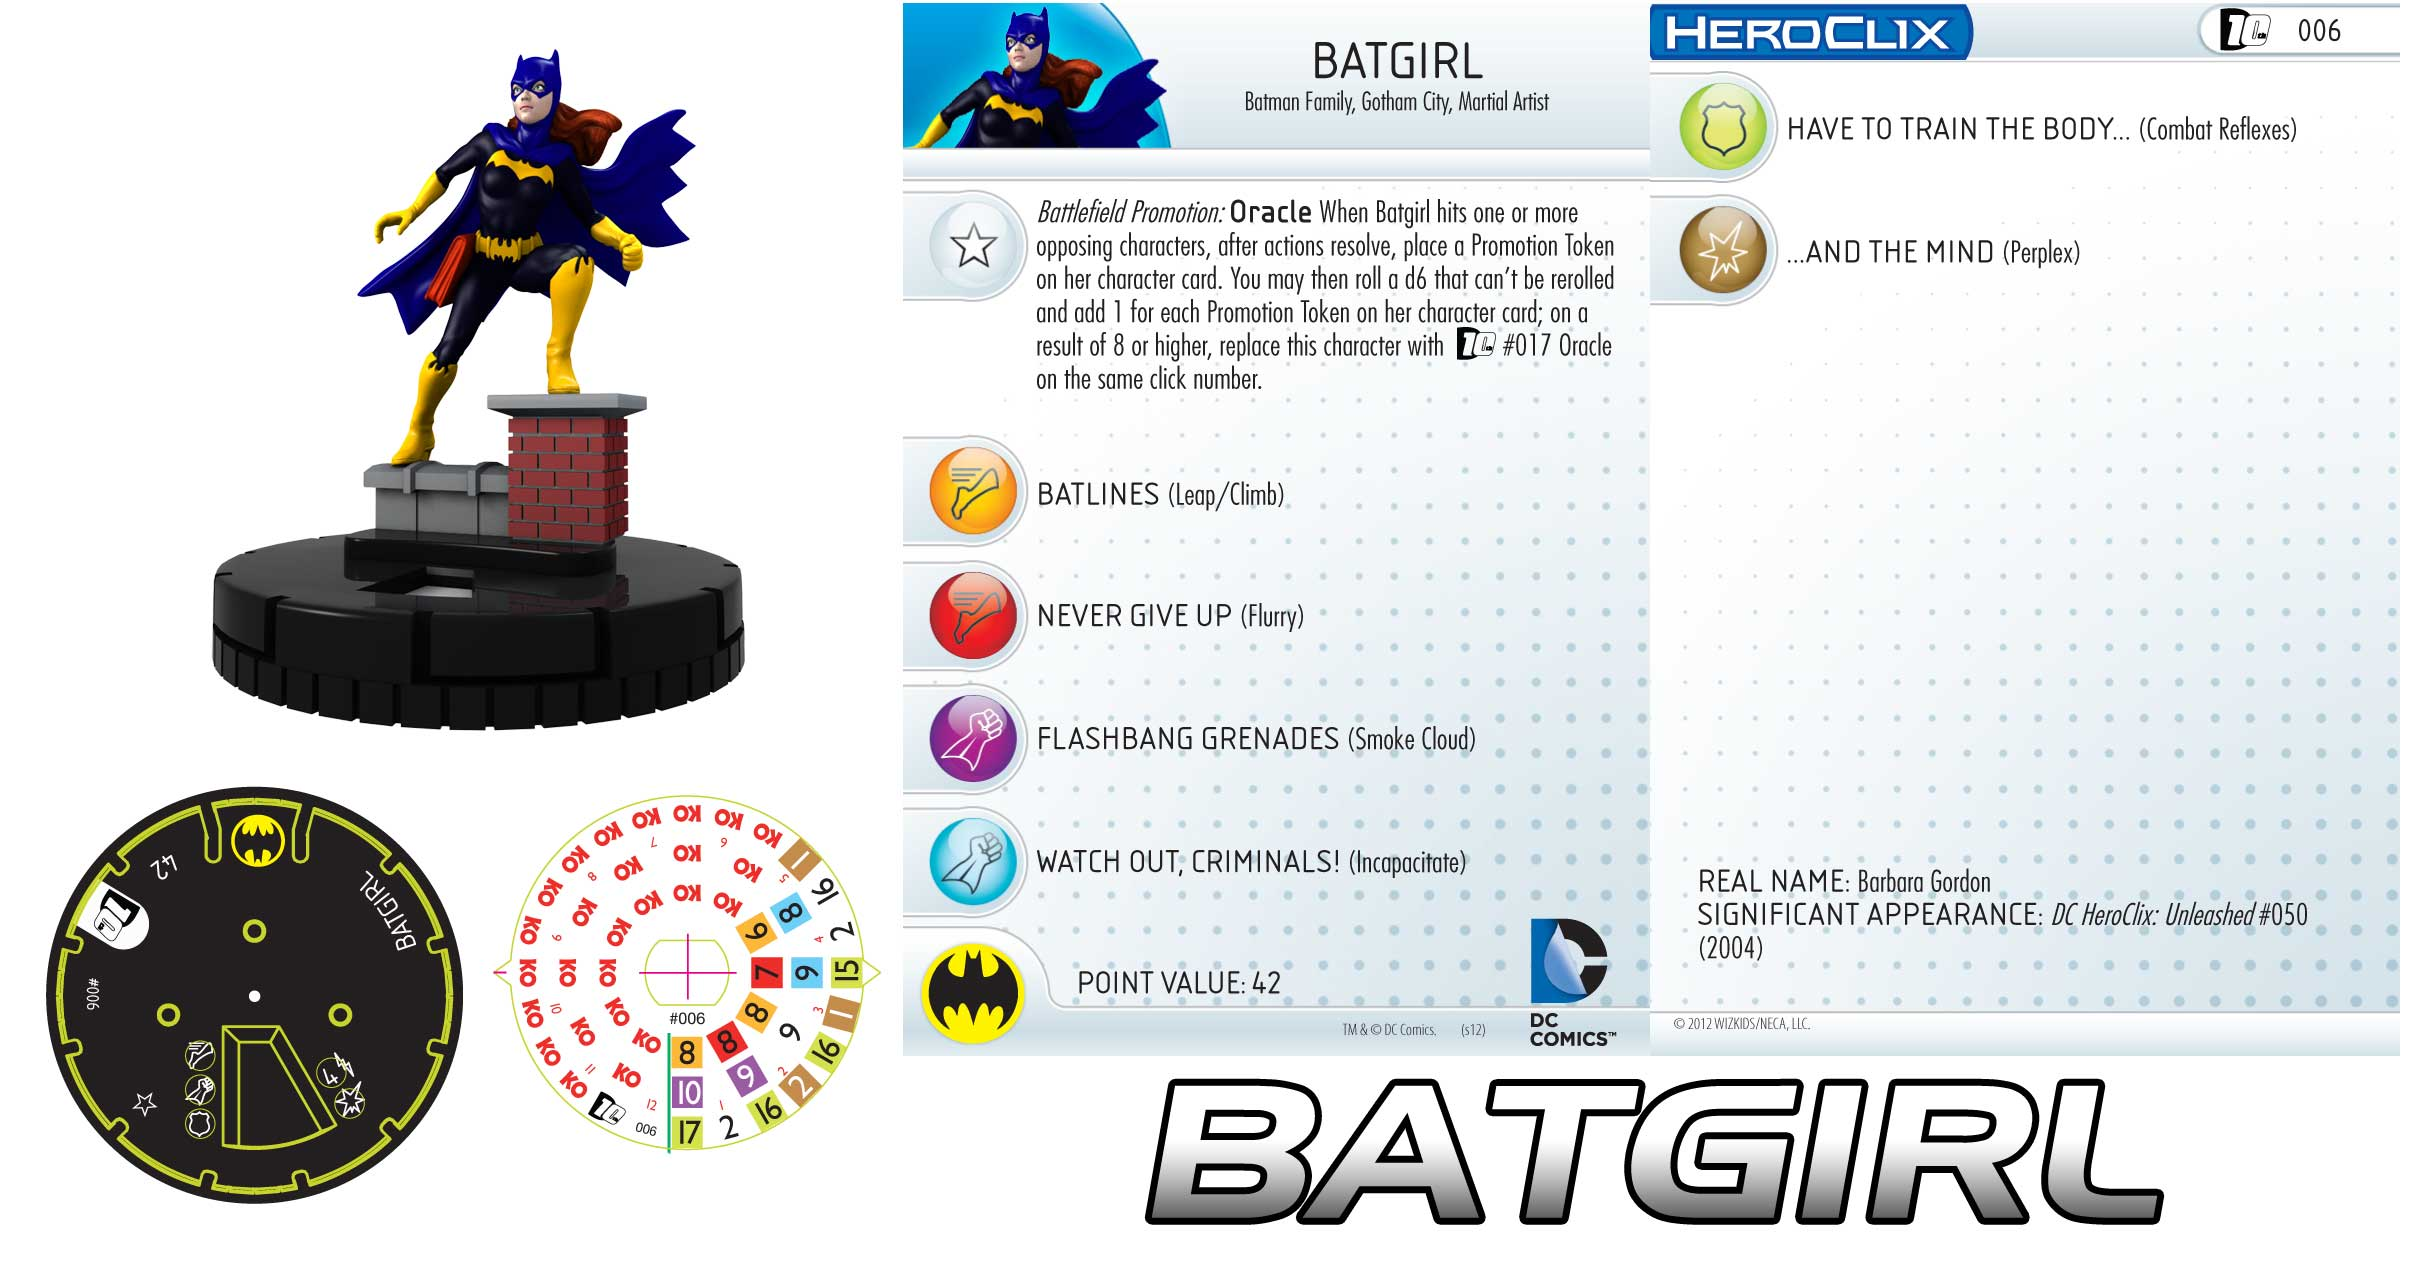 dc comics 10th anniversary batgirl is up! - heroclix realms